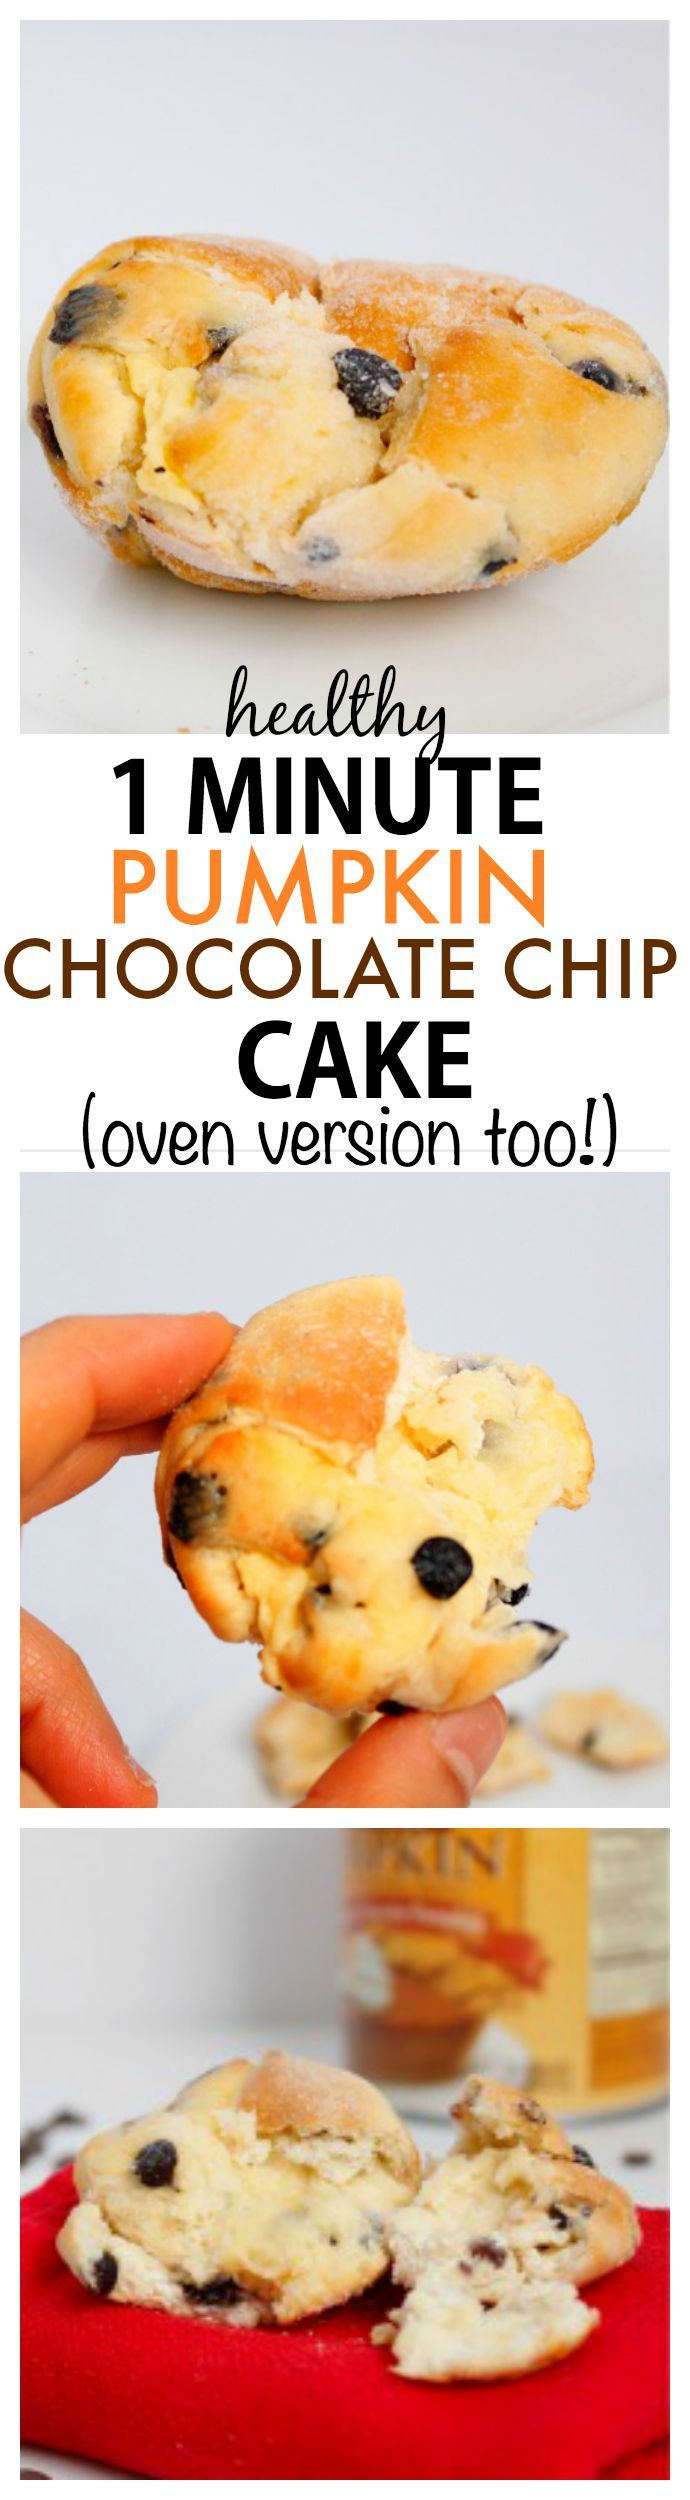 Healthy 1 Minute Pumpkin Chocolate Chip Cake- Moist, fluffy and under 100 calories, this delicious cake is the perfect snack or light dessert! {vegan, gluten free + paleo options!) - thebigmansworld.com